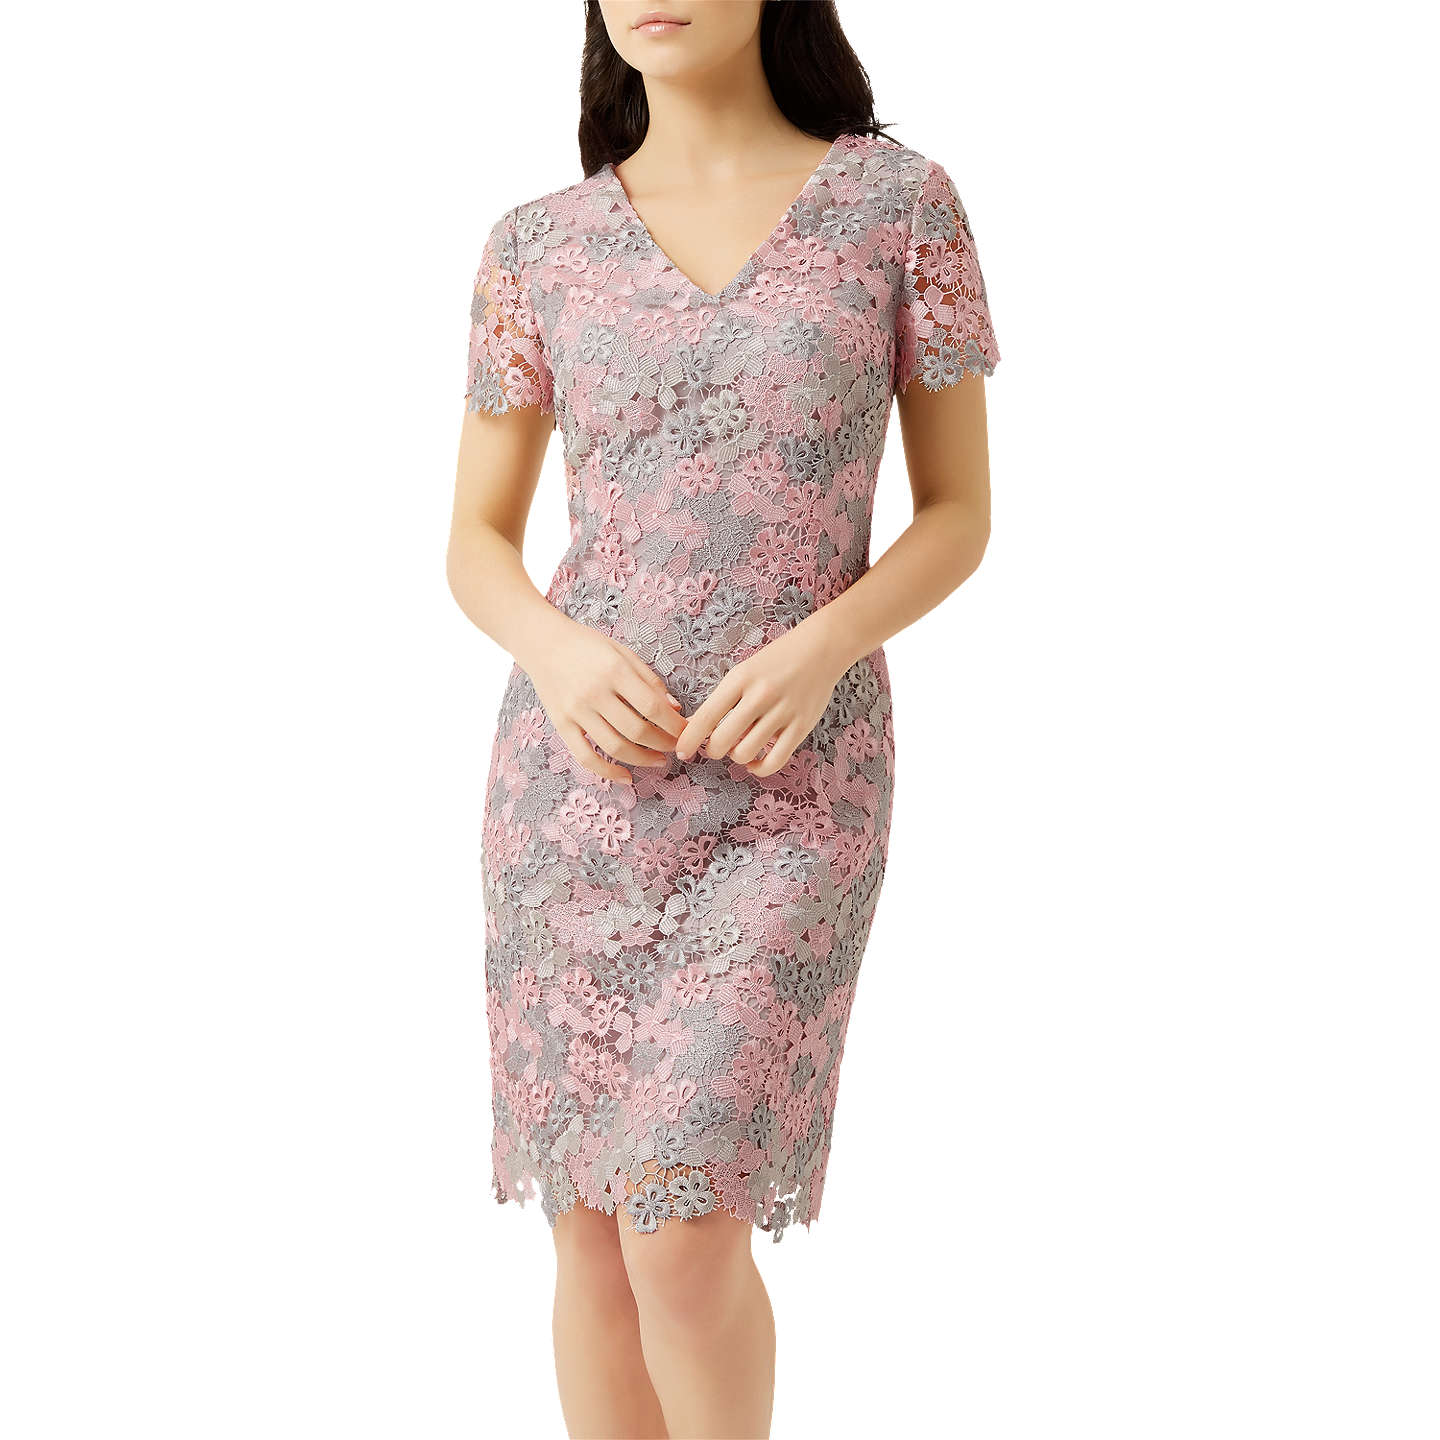 Fenn Wright Manson Petite Molly Dress, Pink At John Lewis